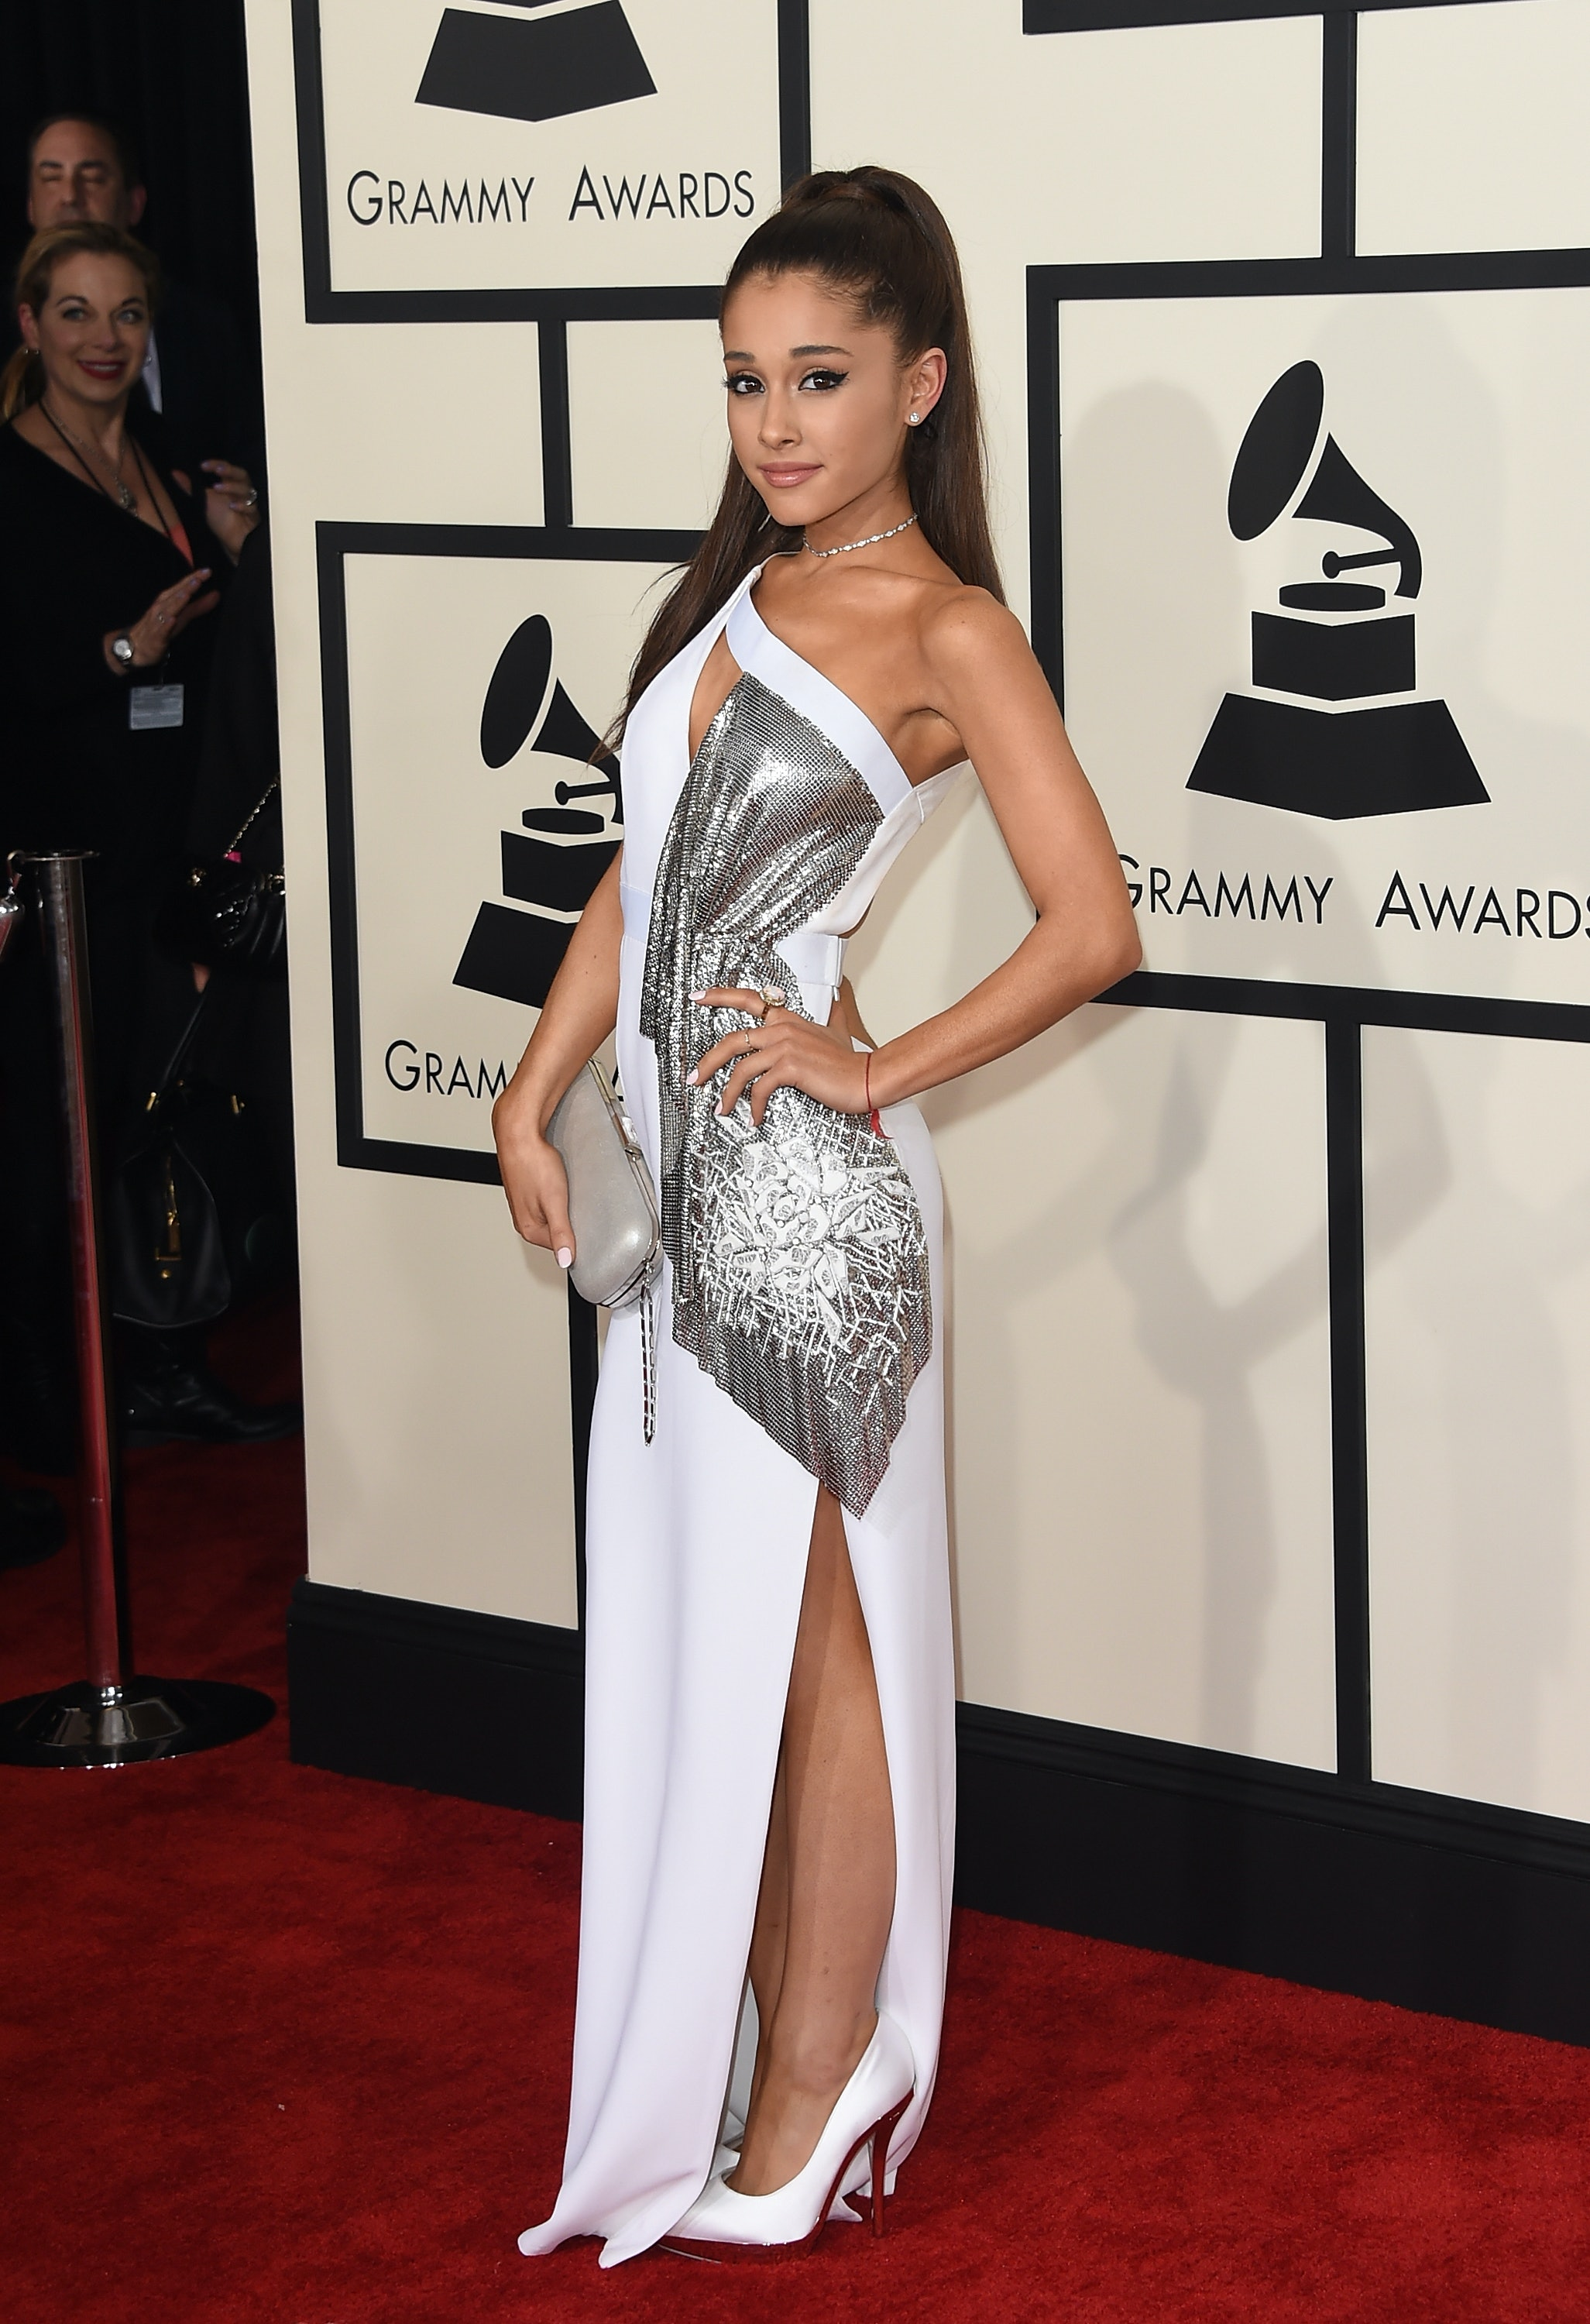 ariana grande missed the 2019 grammys but this is what she would ve worn https www thezoereport com p ariana grande missed the 2019 grammys but this is what she wouldve worn 15940812